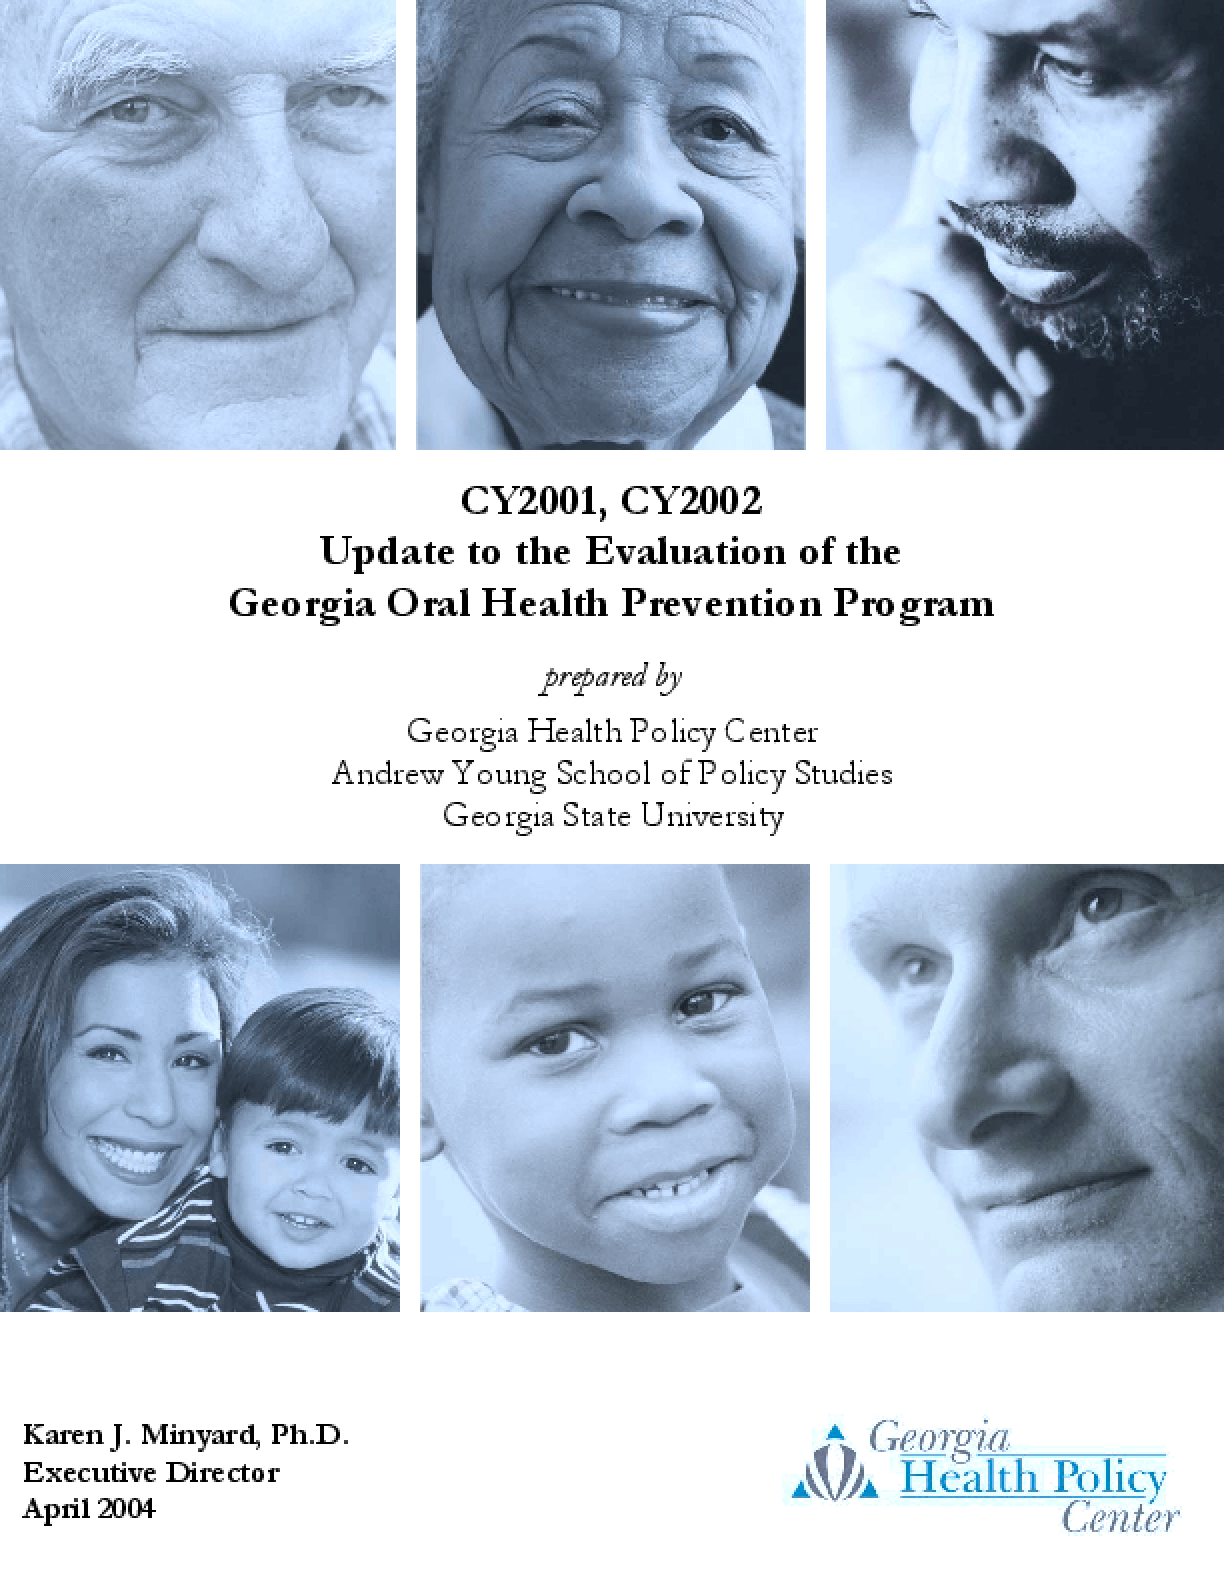 CY2001, CY2002 Update to the Evaluation of the Georgia Oral Health Prevention Program